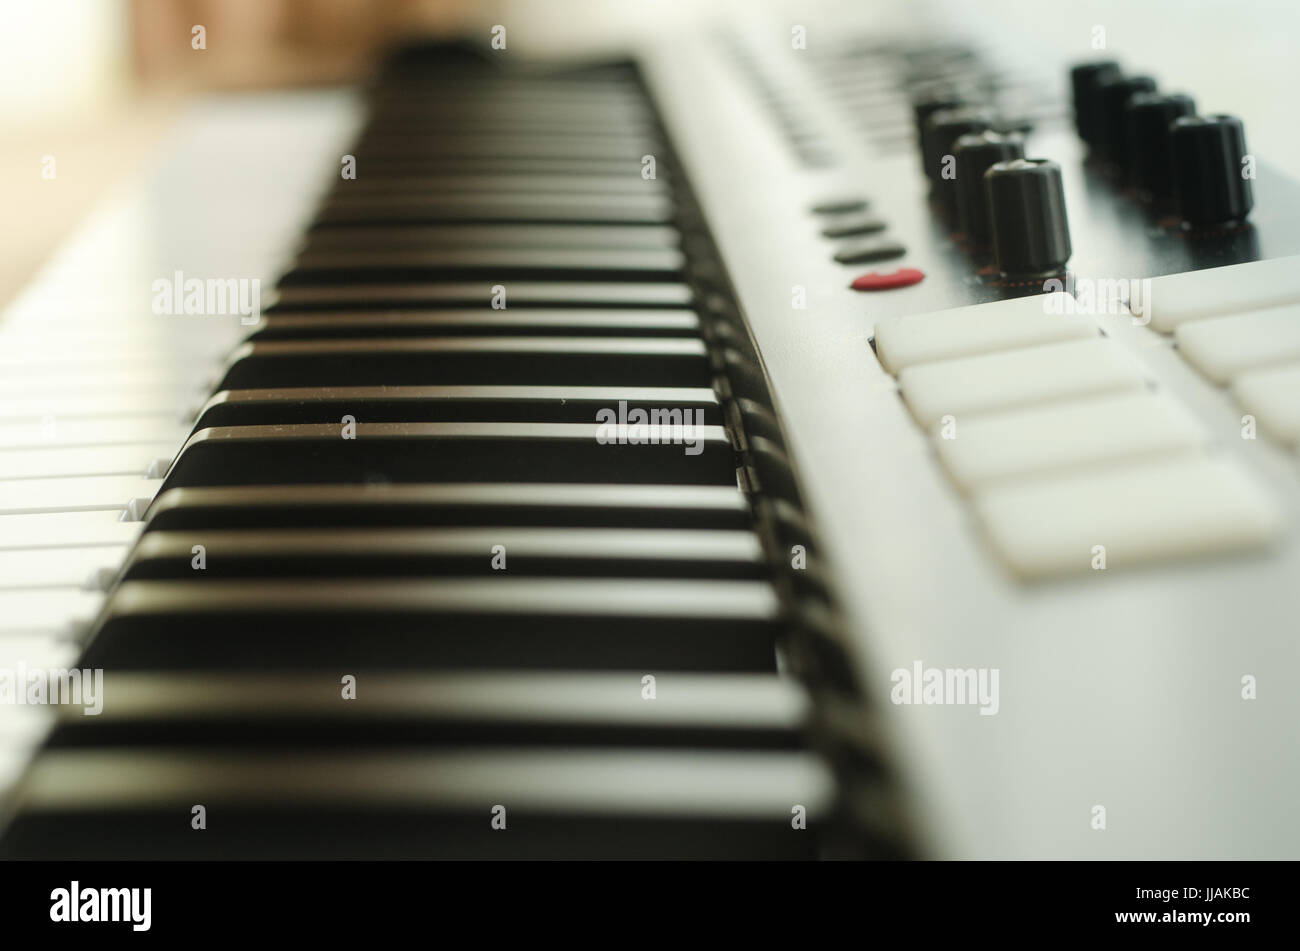 Horizontal photo keyboard of synthesizer - Stock Image